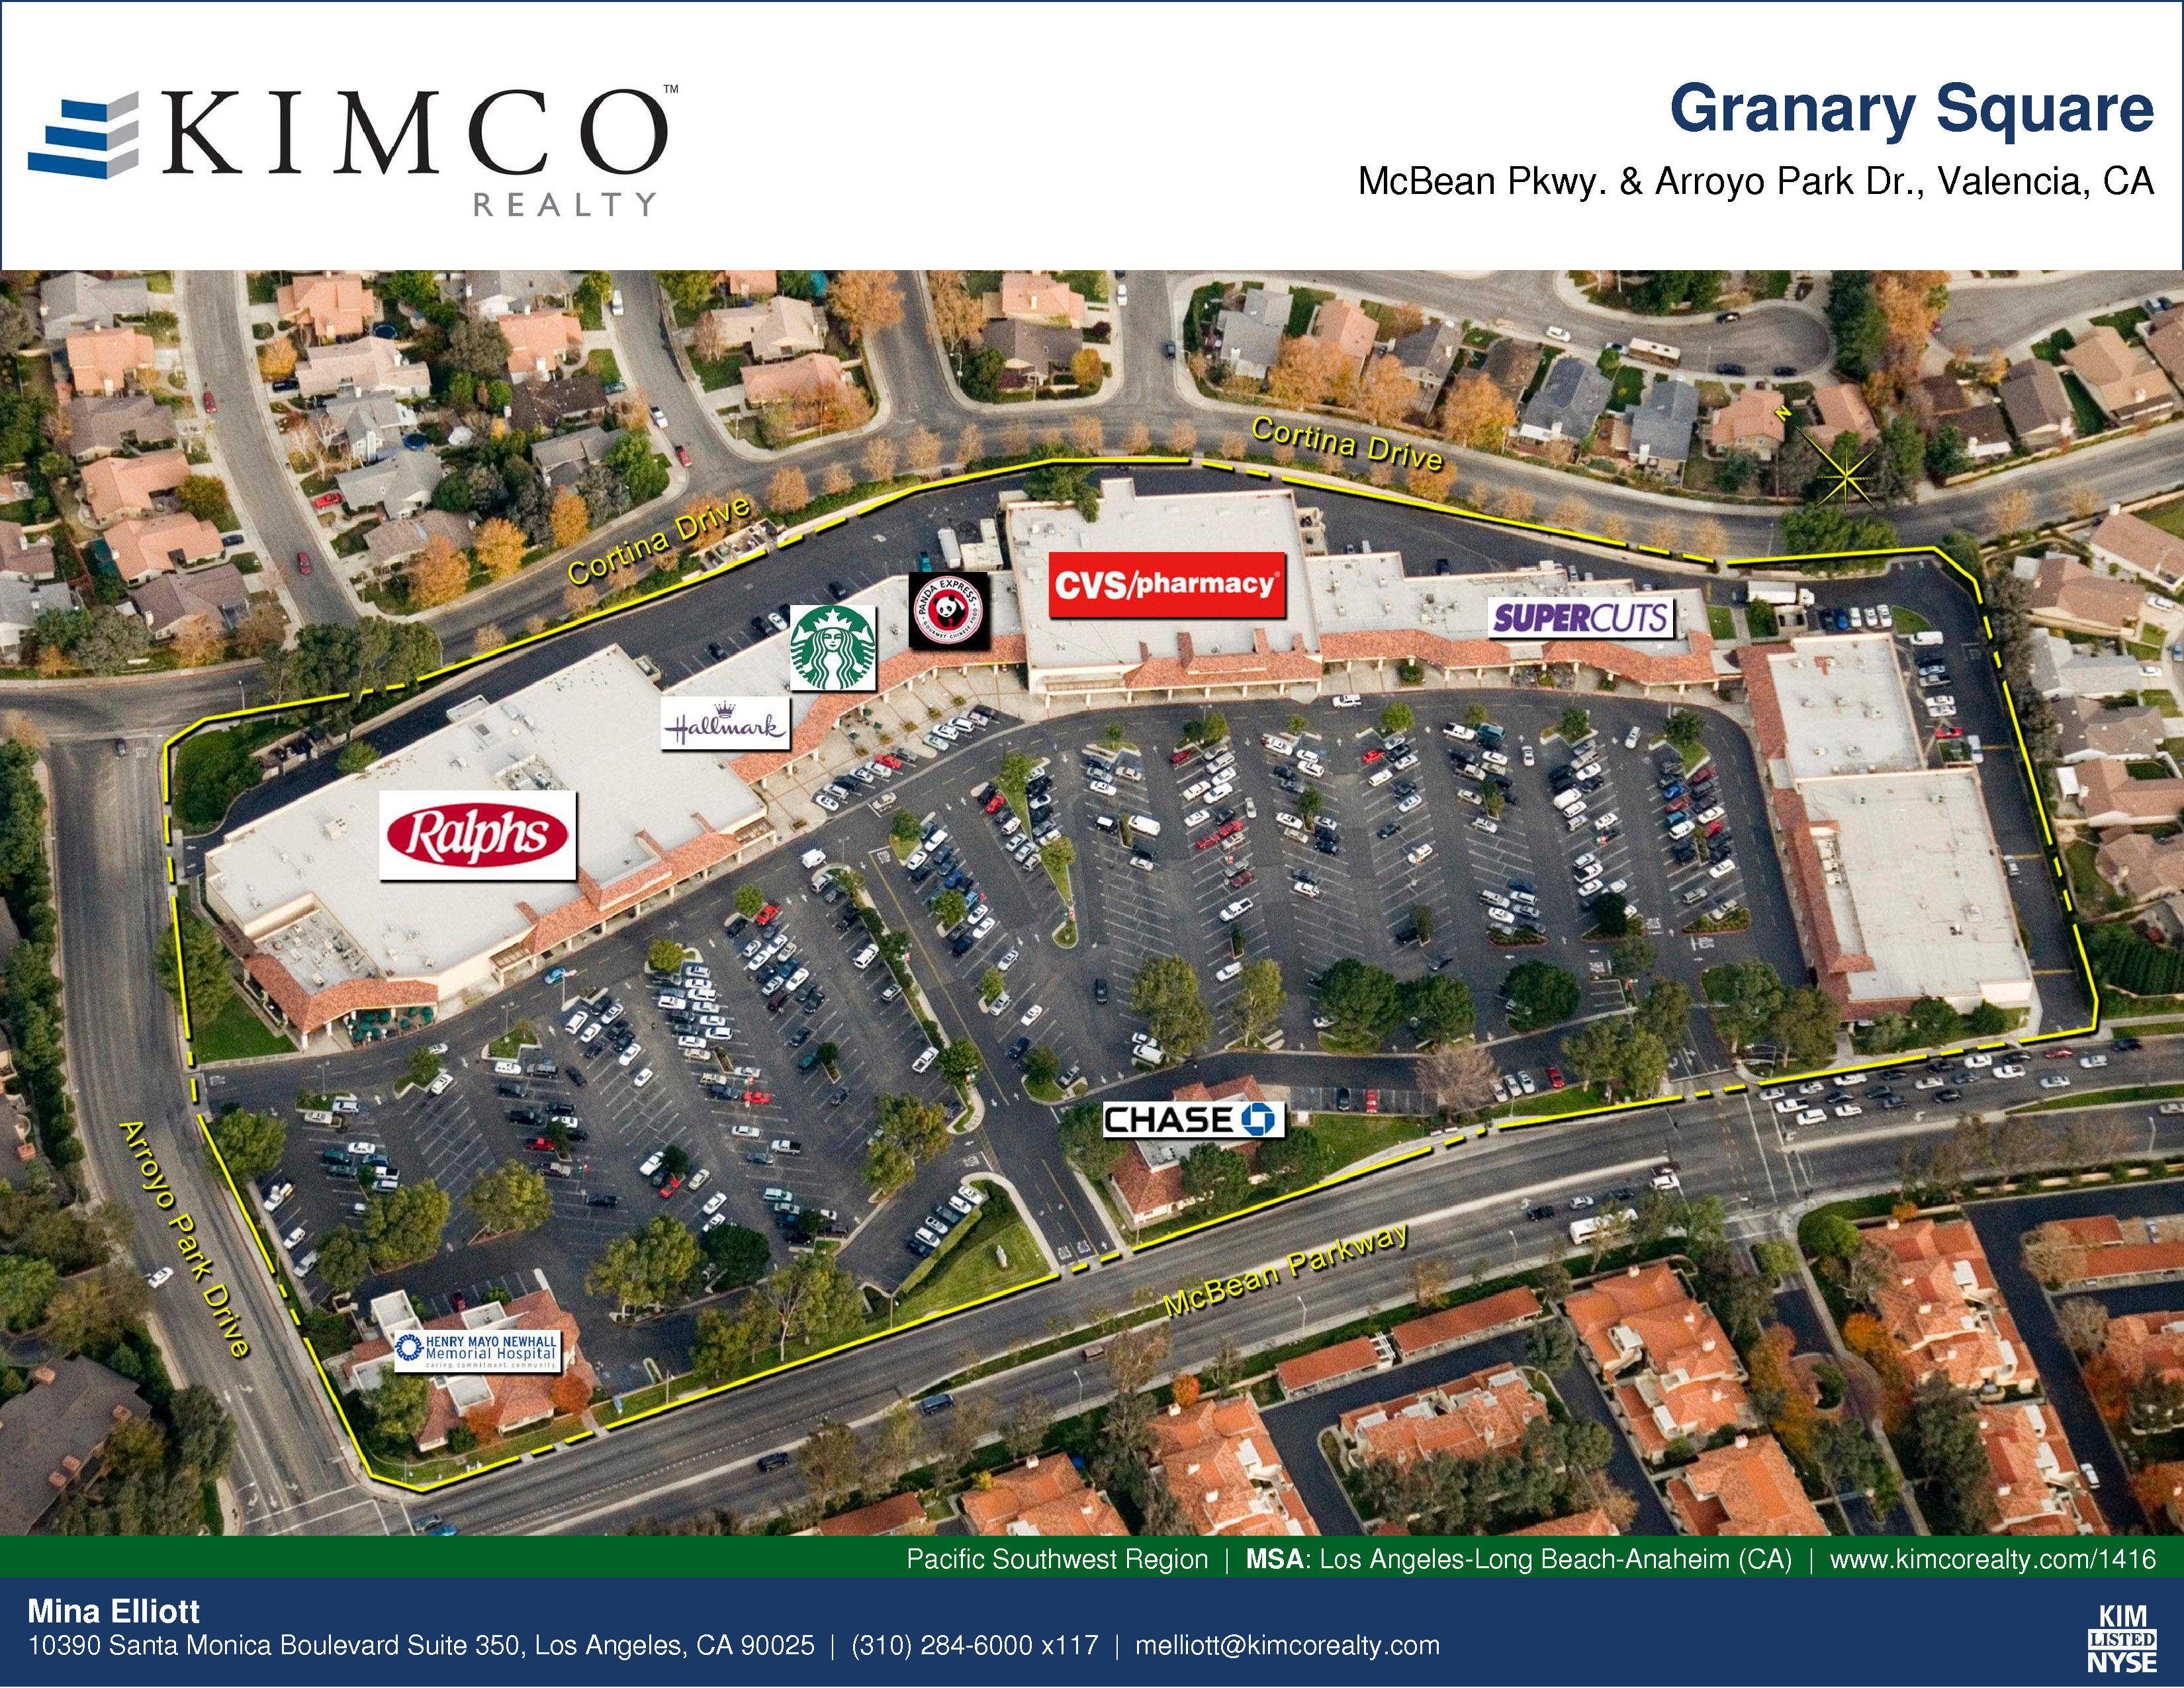 real estate for lease granary square mcbean pkwy arroyo park